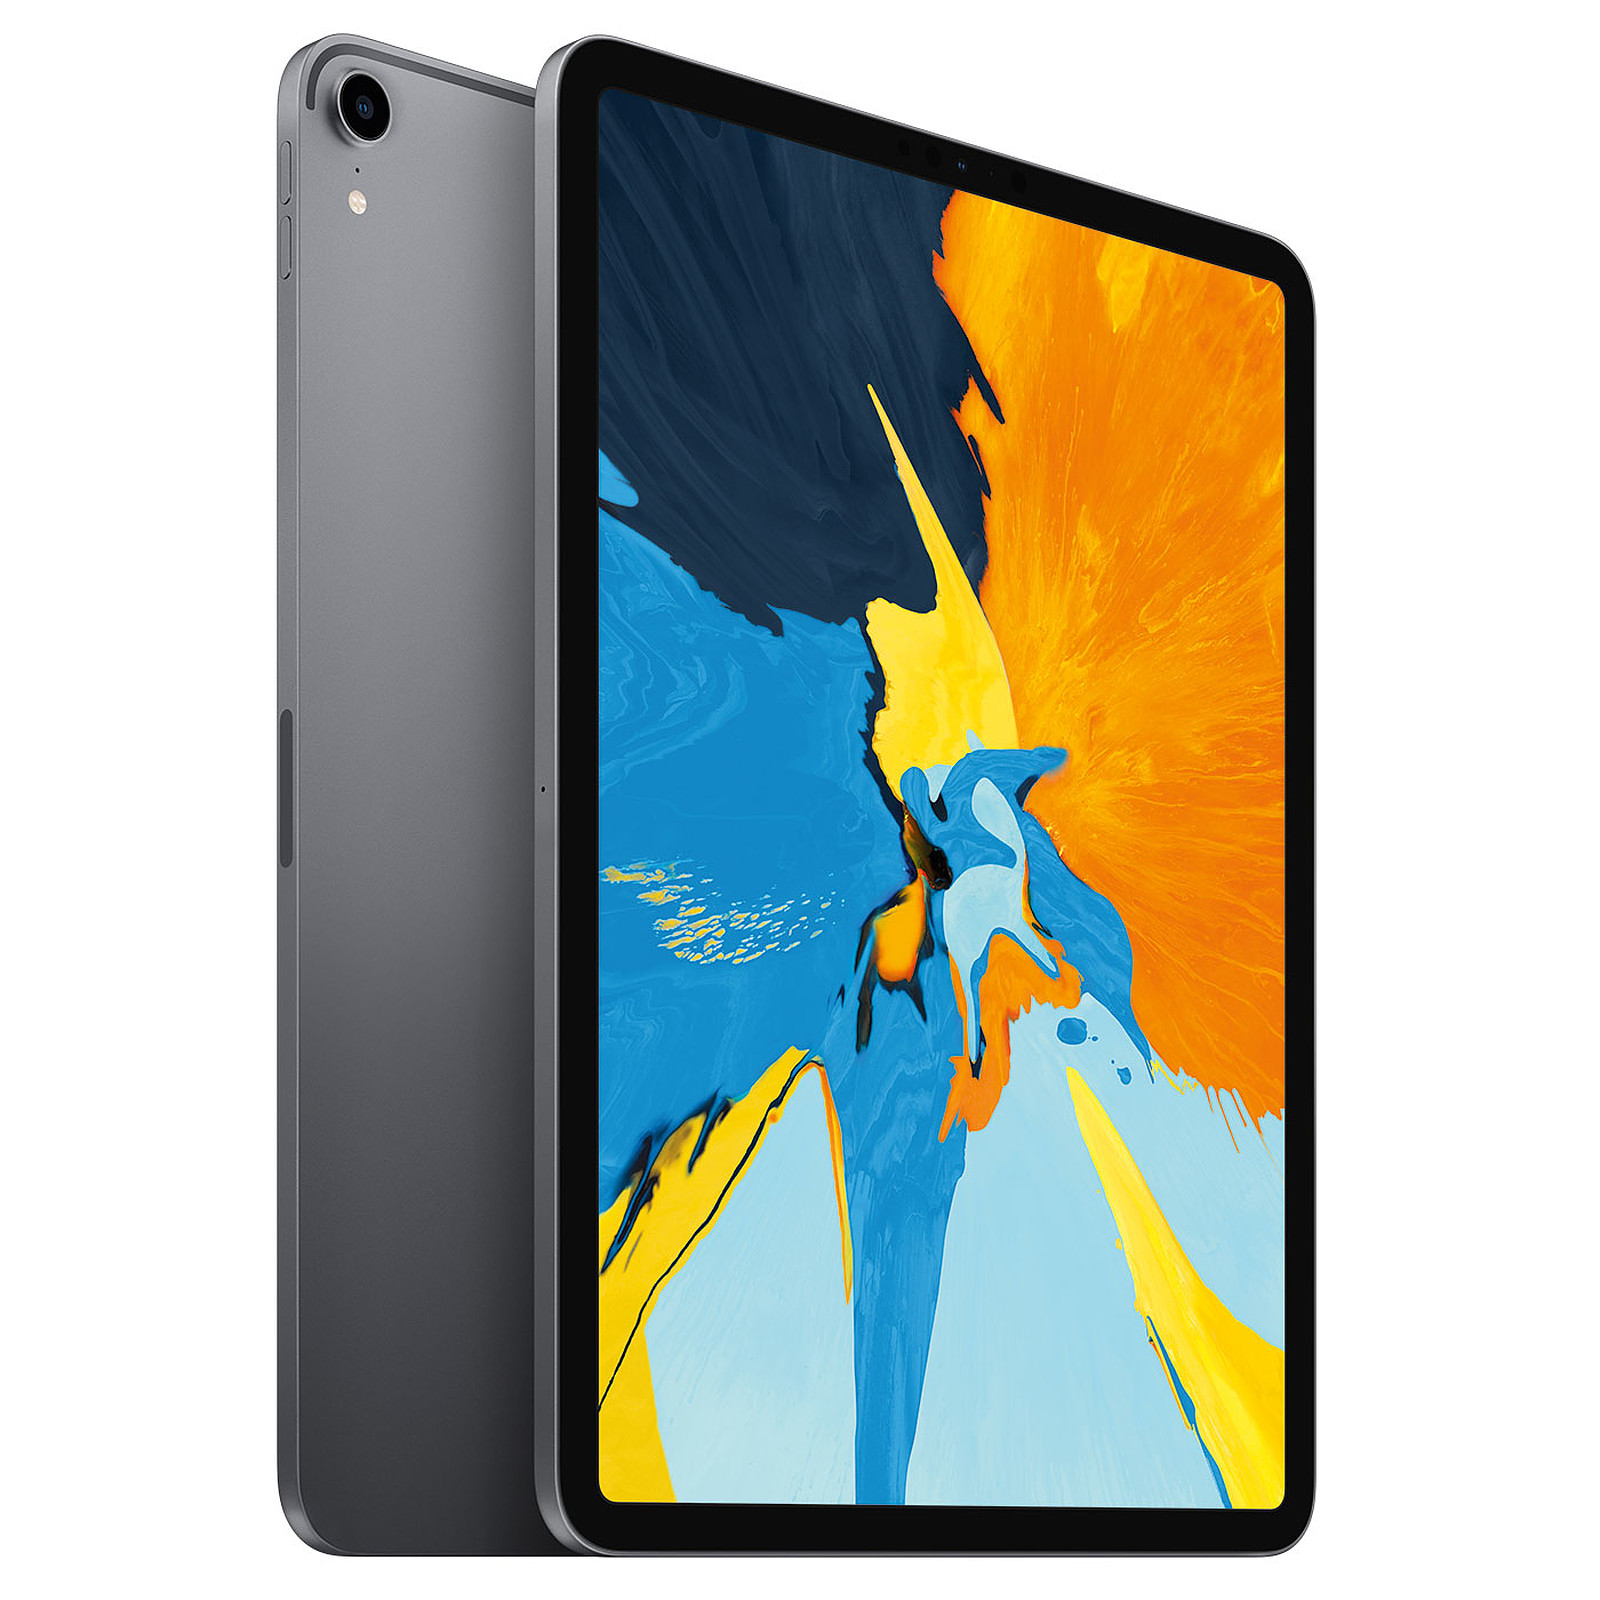 Apple iPad Pro 11-inch Wi-Fi 256GB Space Gray (2018)